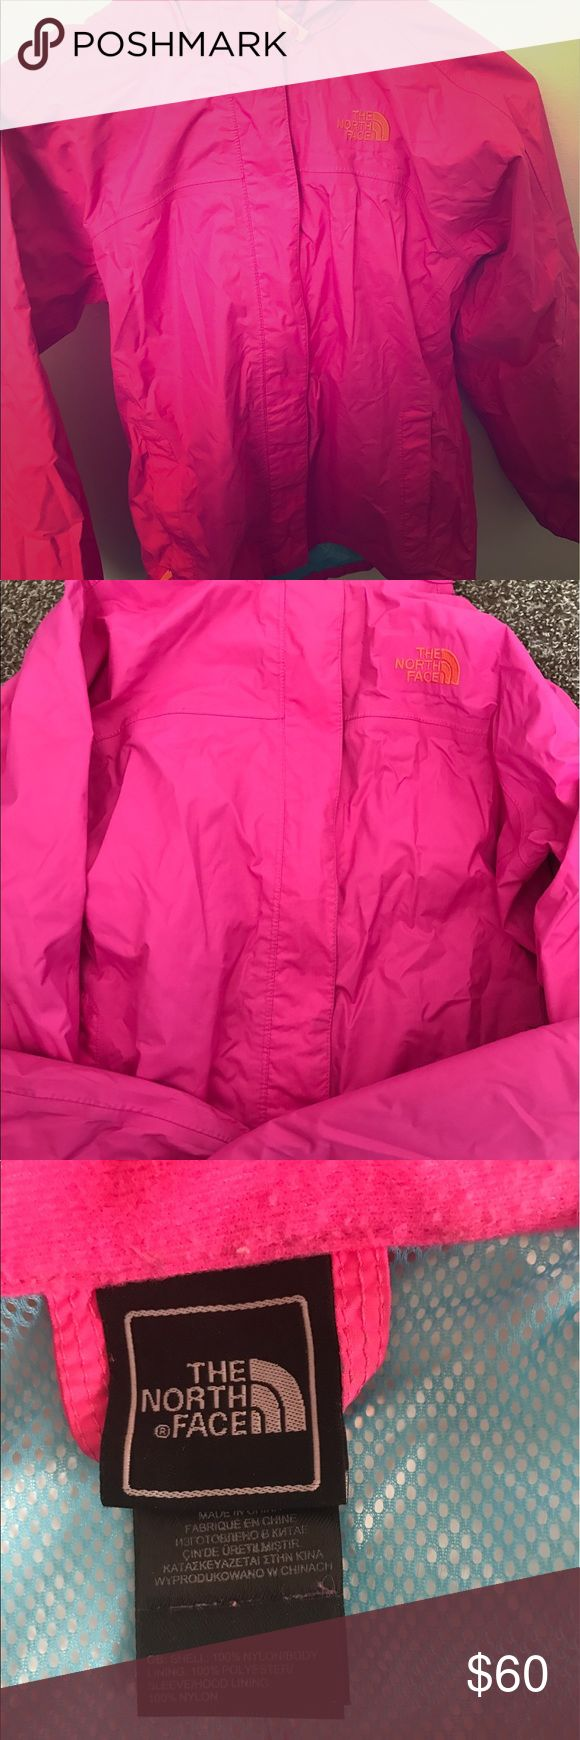 Girls North Face Jacket Girls The North Face Jacket In Good Condition The North Face Jackets & Coats Raincoats